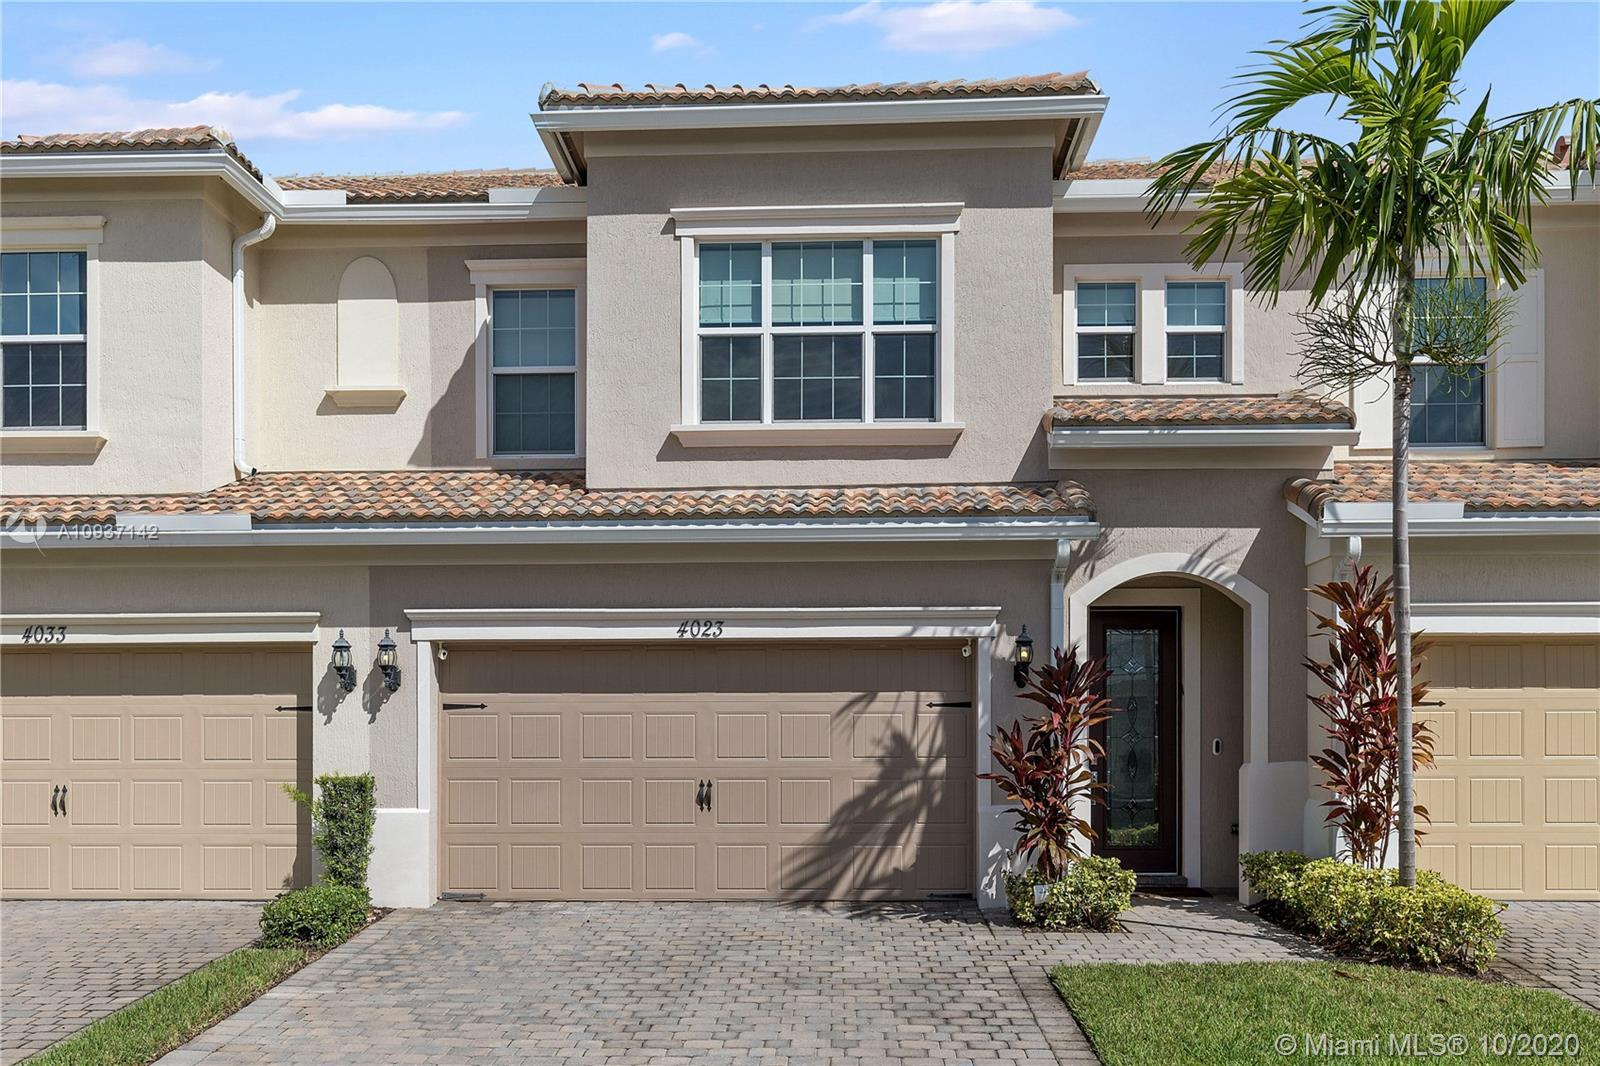 Welcome to Hollywood's newest gated community ! The very popular Raritan Model offers a modern feel